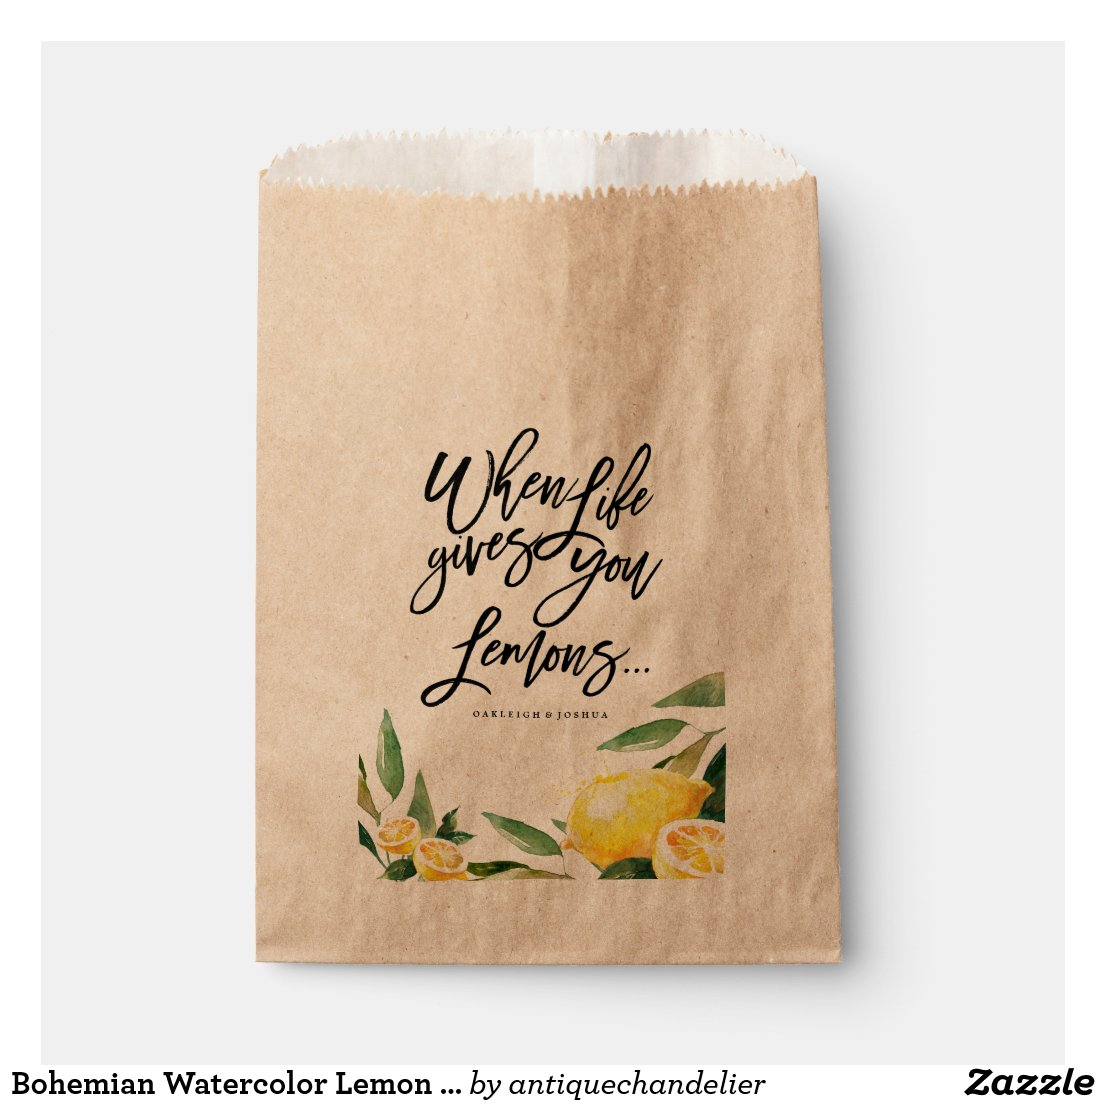 Bohemian Watercolor Lemon Wedding Favour Bag